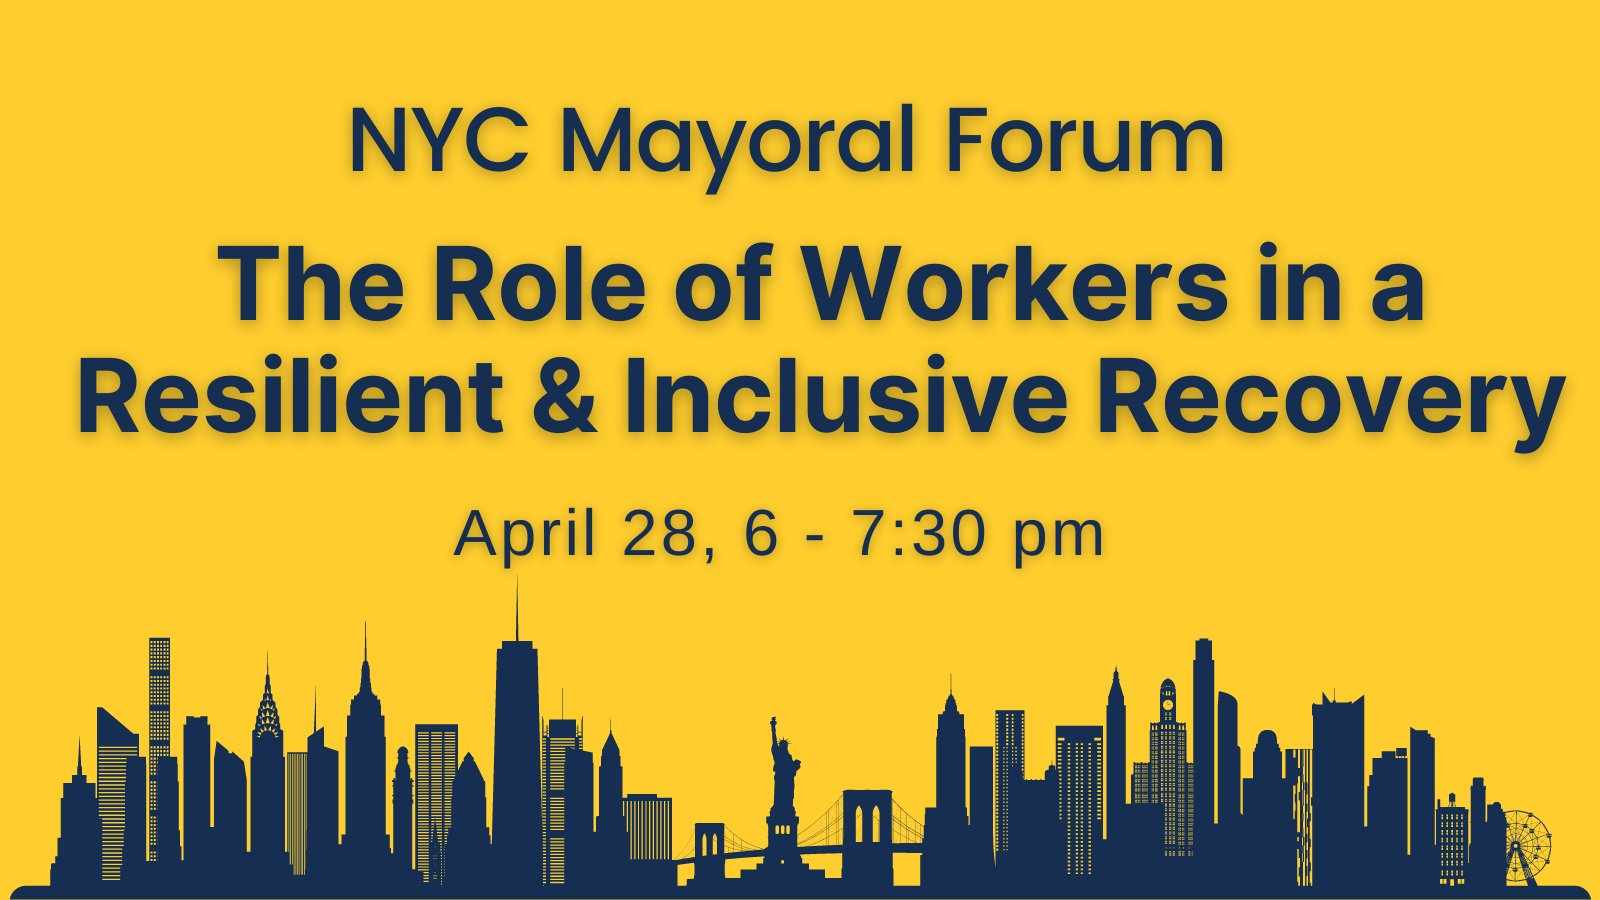 Join Mayoral Forum and Hear Candidates' Vision on Workforce Development, 4/28/21